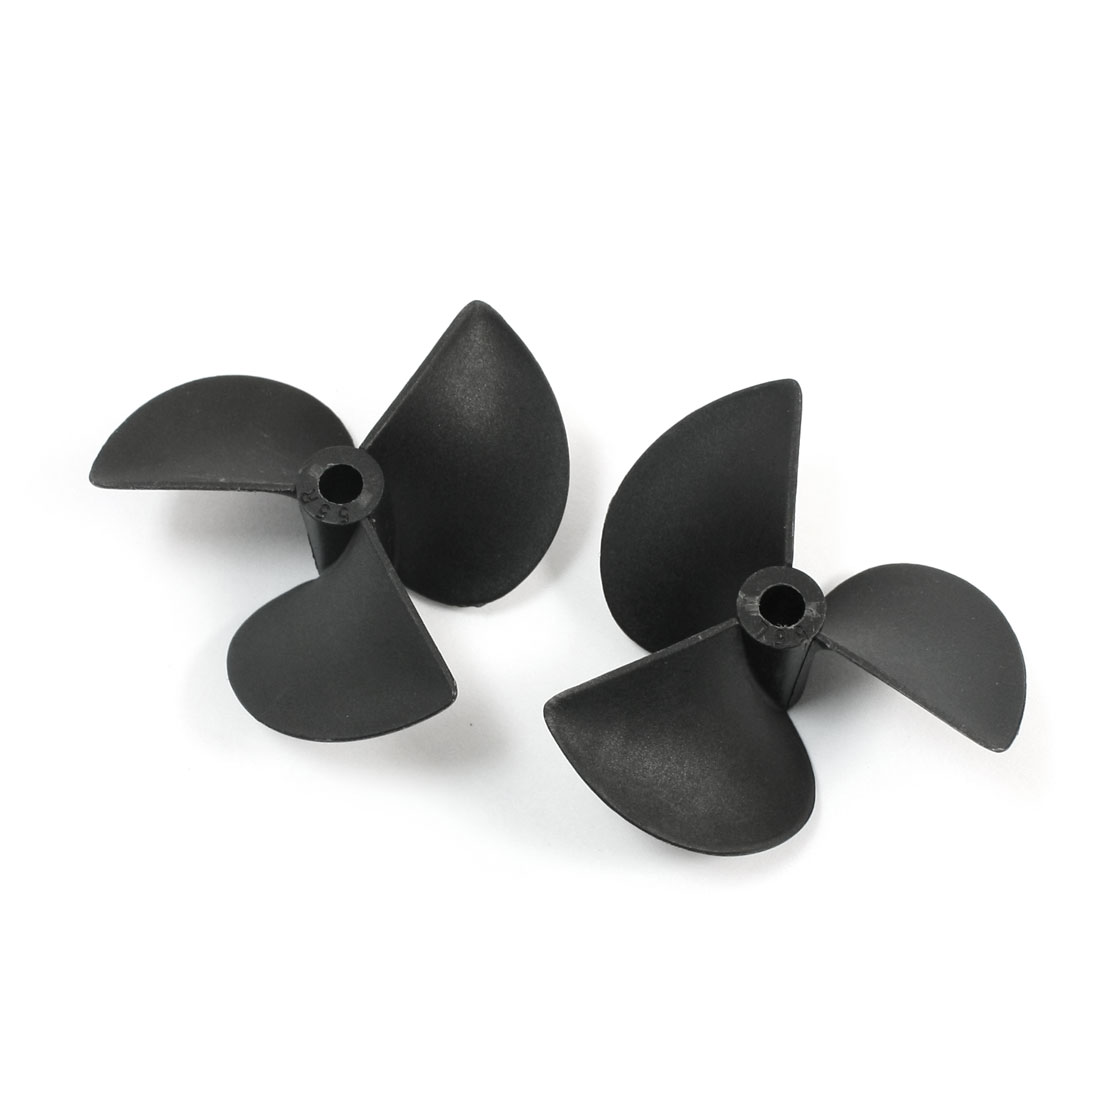 "Pair 5540 55mm Dia 40mm Pitch 3-Vane Black Plastic CW/CCW Positive Reverse Propeller Prop for 3/16"" Shaft RC Ship Boat Model"